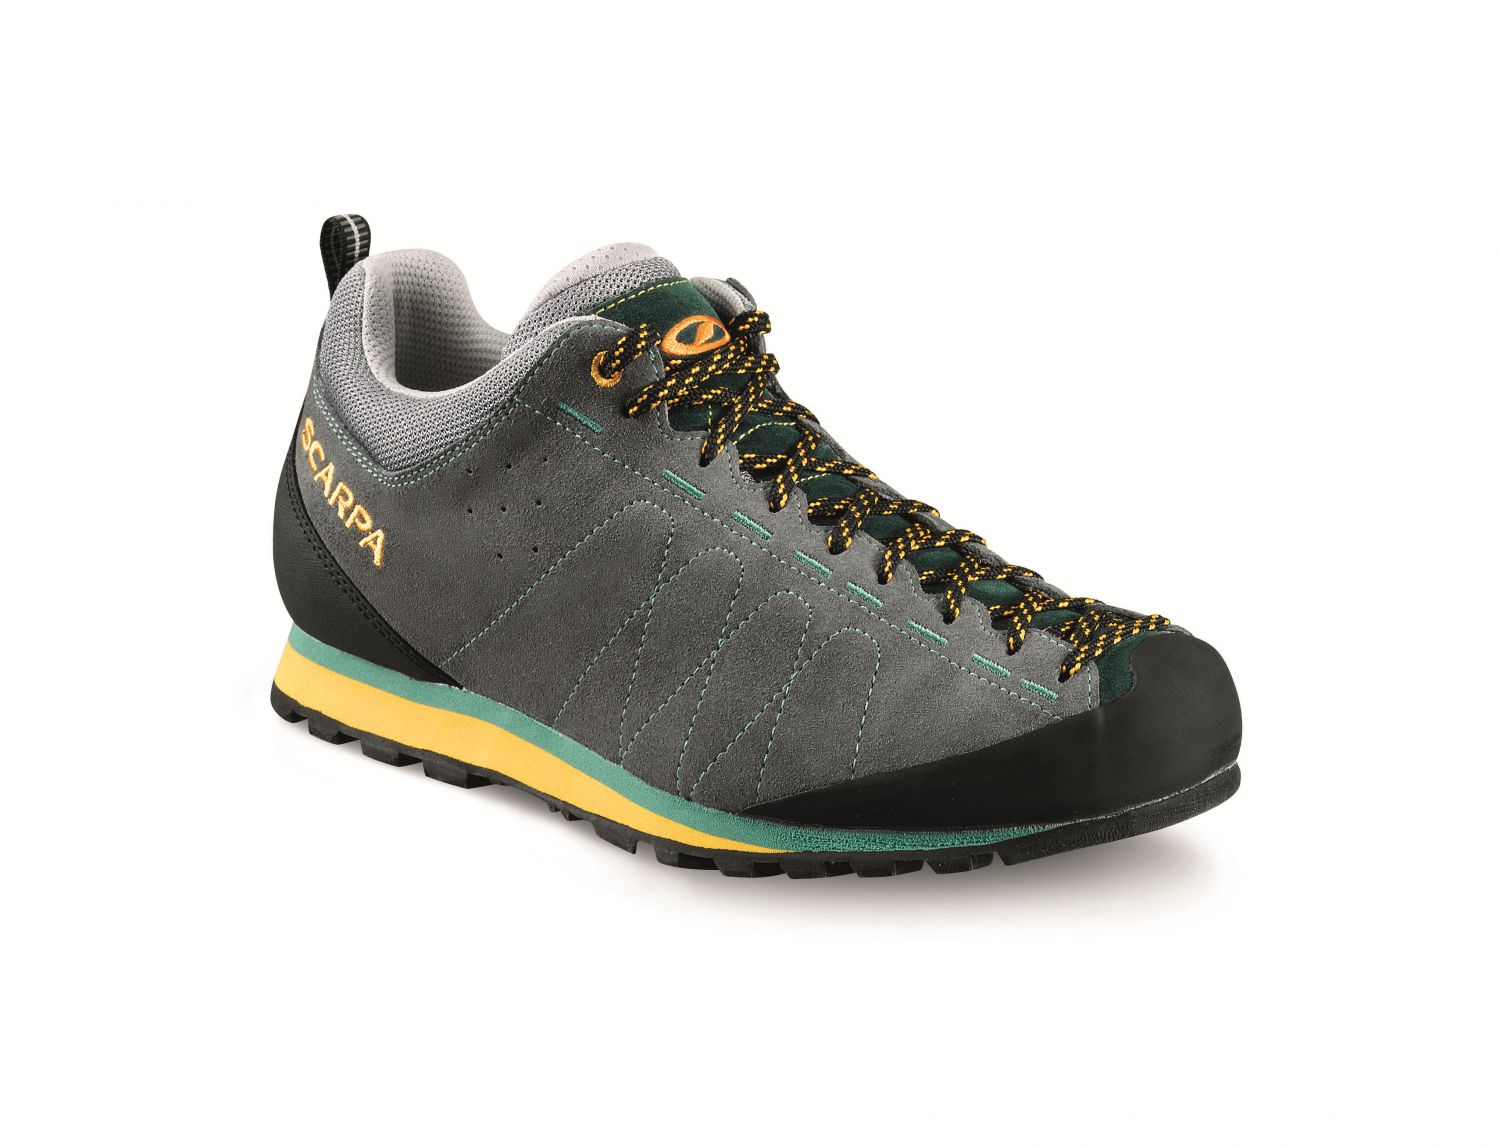 Scarpa - Agile Smoke-Northsea - Approach Shoes - 43